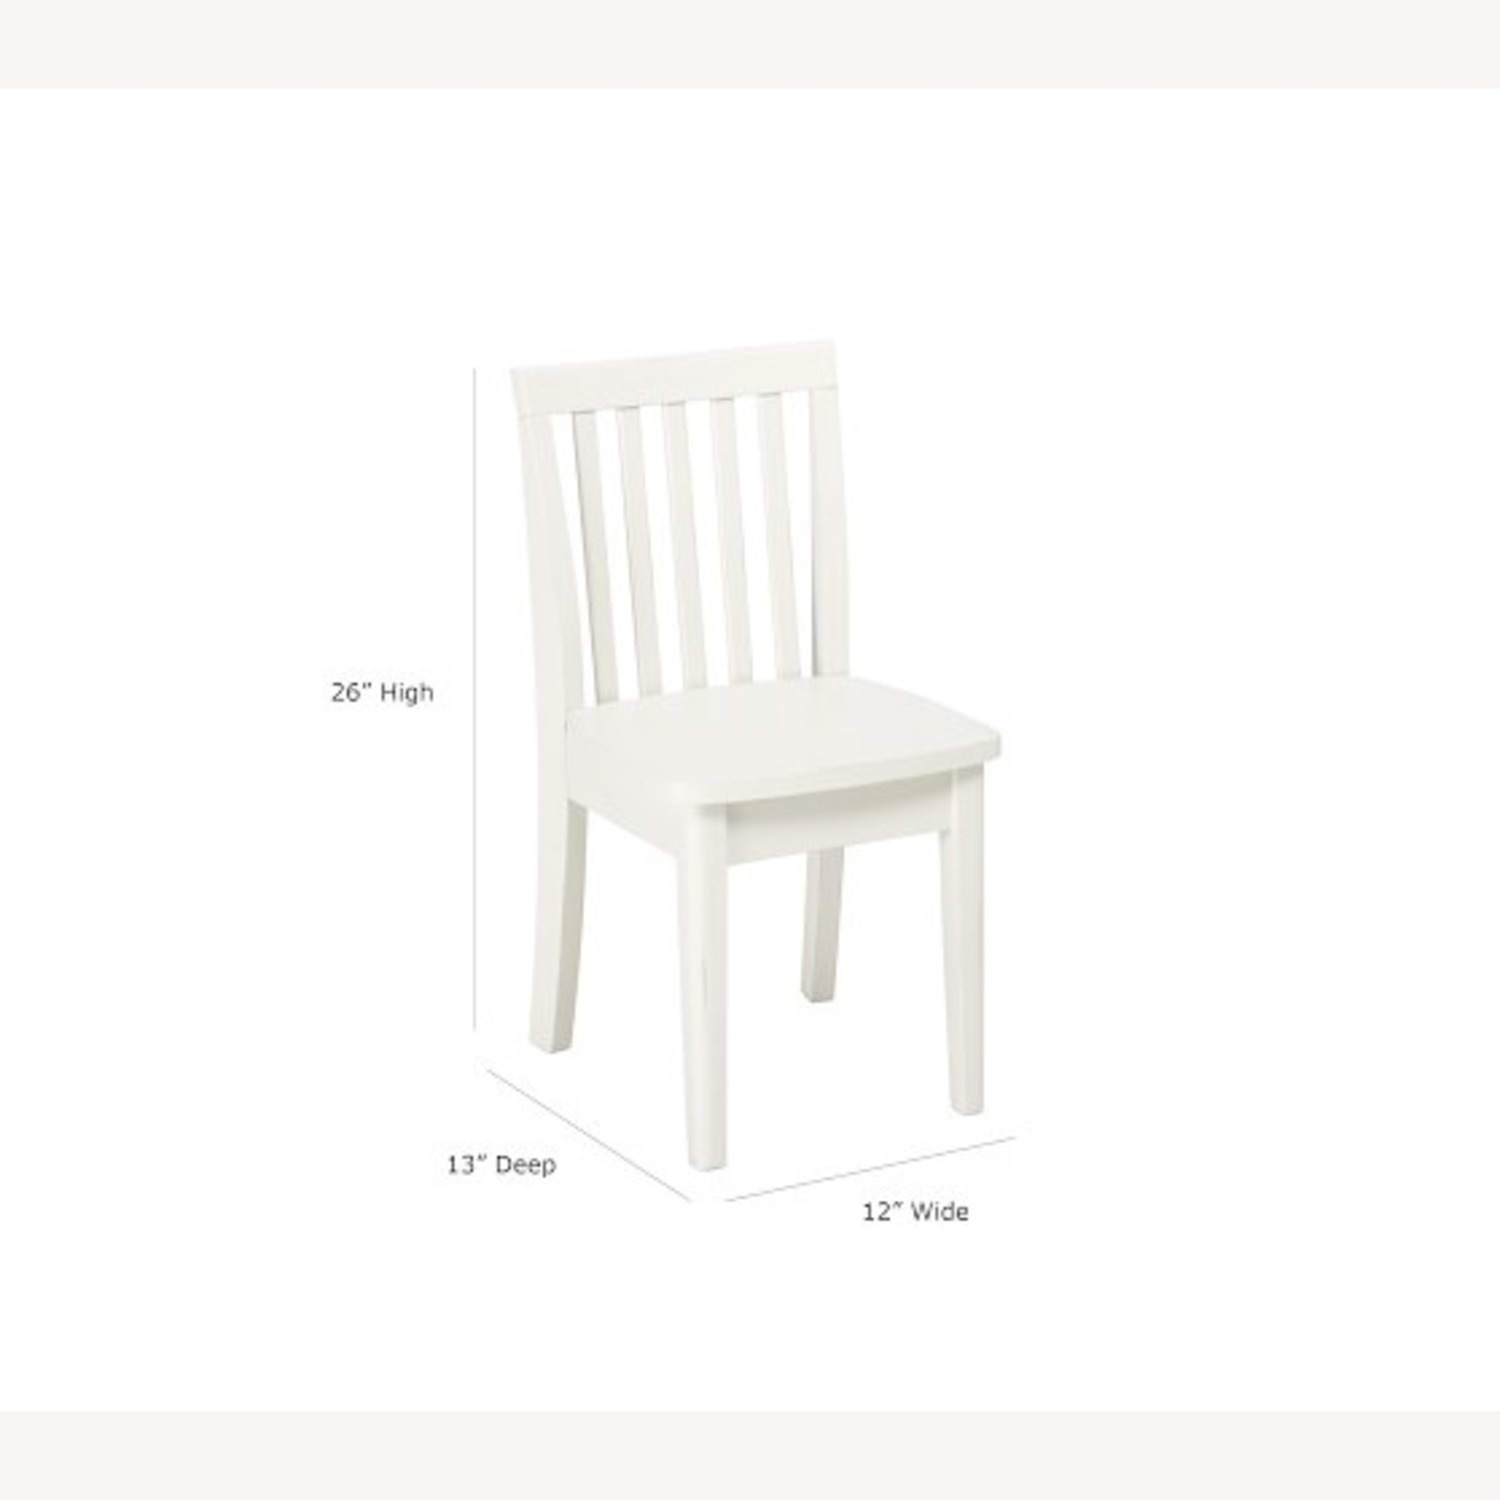 Pottery Barn Kids Desk Chair, Simply White - image-1